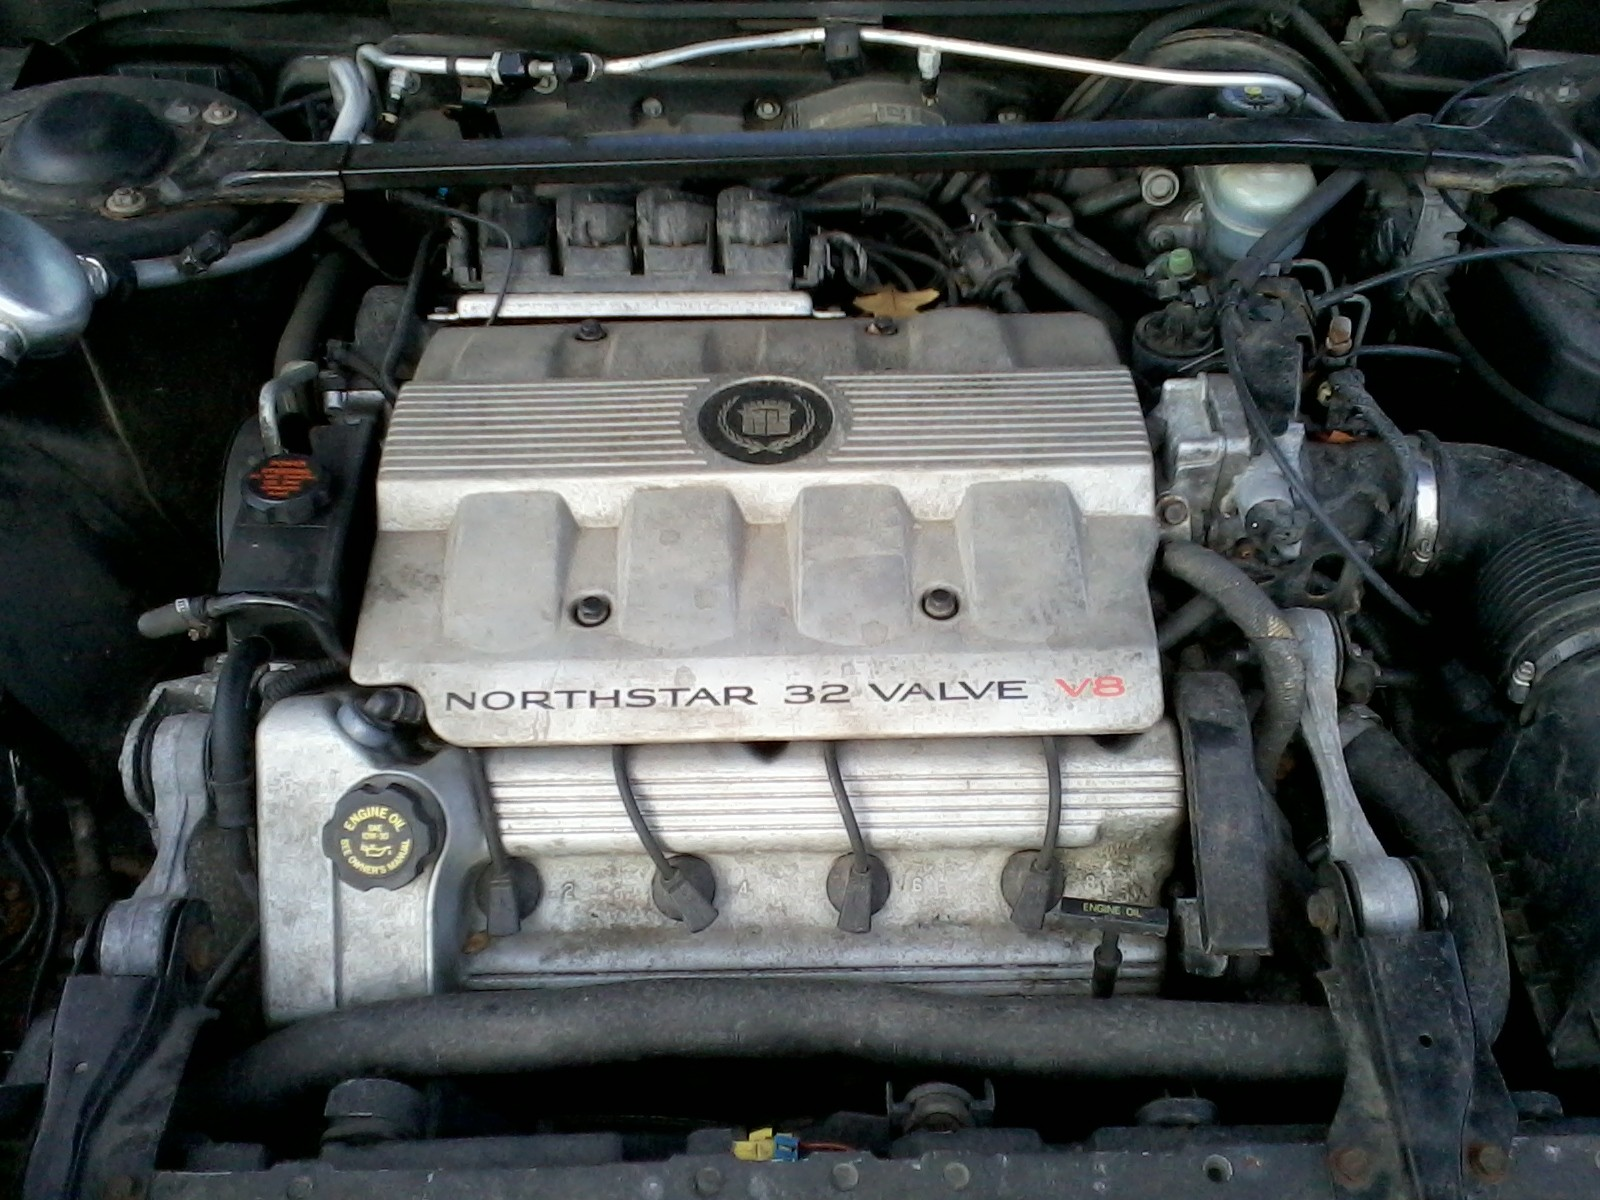 2000 Cadillac Deville Engine Diagram 2000 Cadillac Eldorado Esc Coupe 4 6l  V8 Auto Of 2000